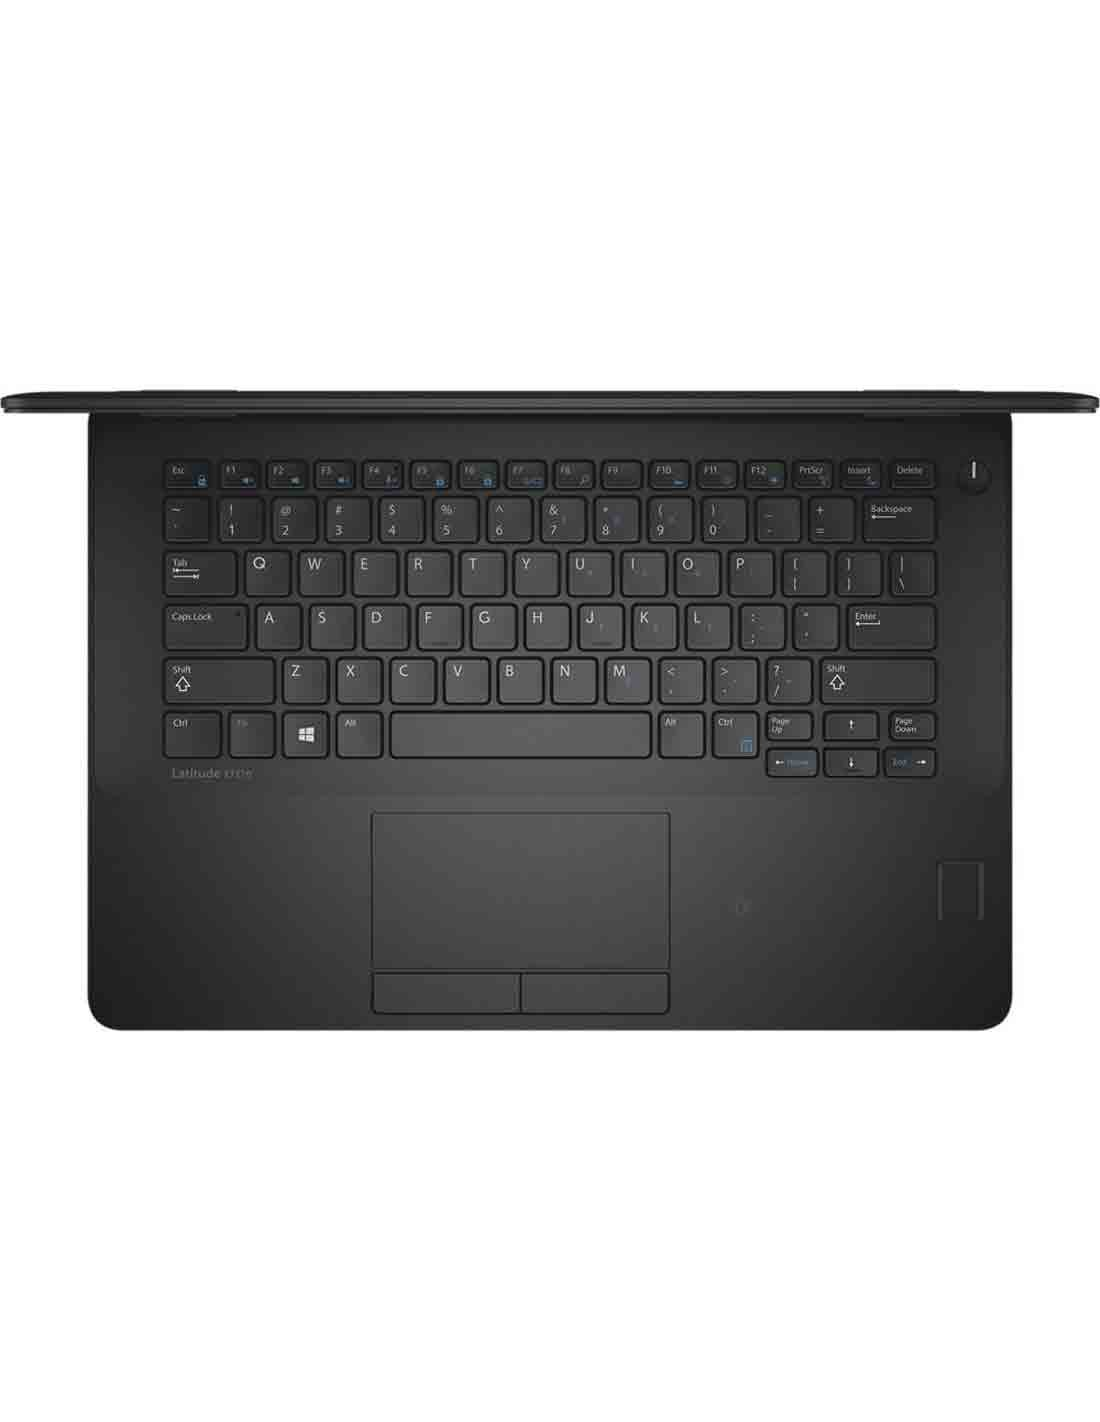 Dell Latitude E7270 Business Laptop Images